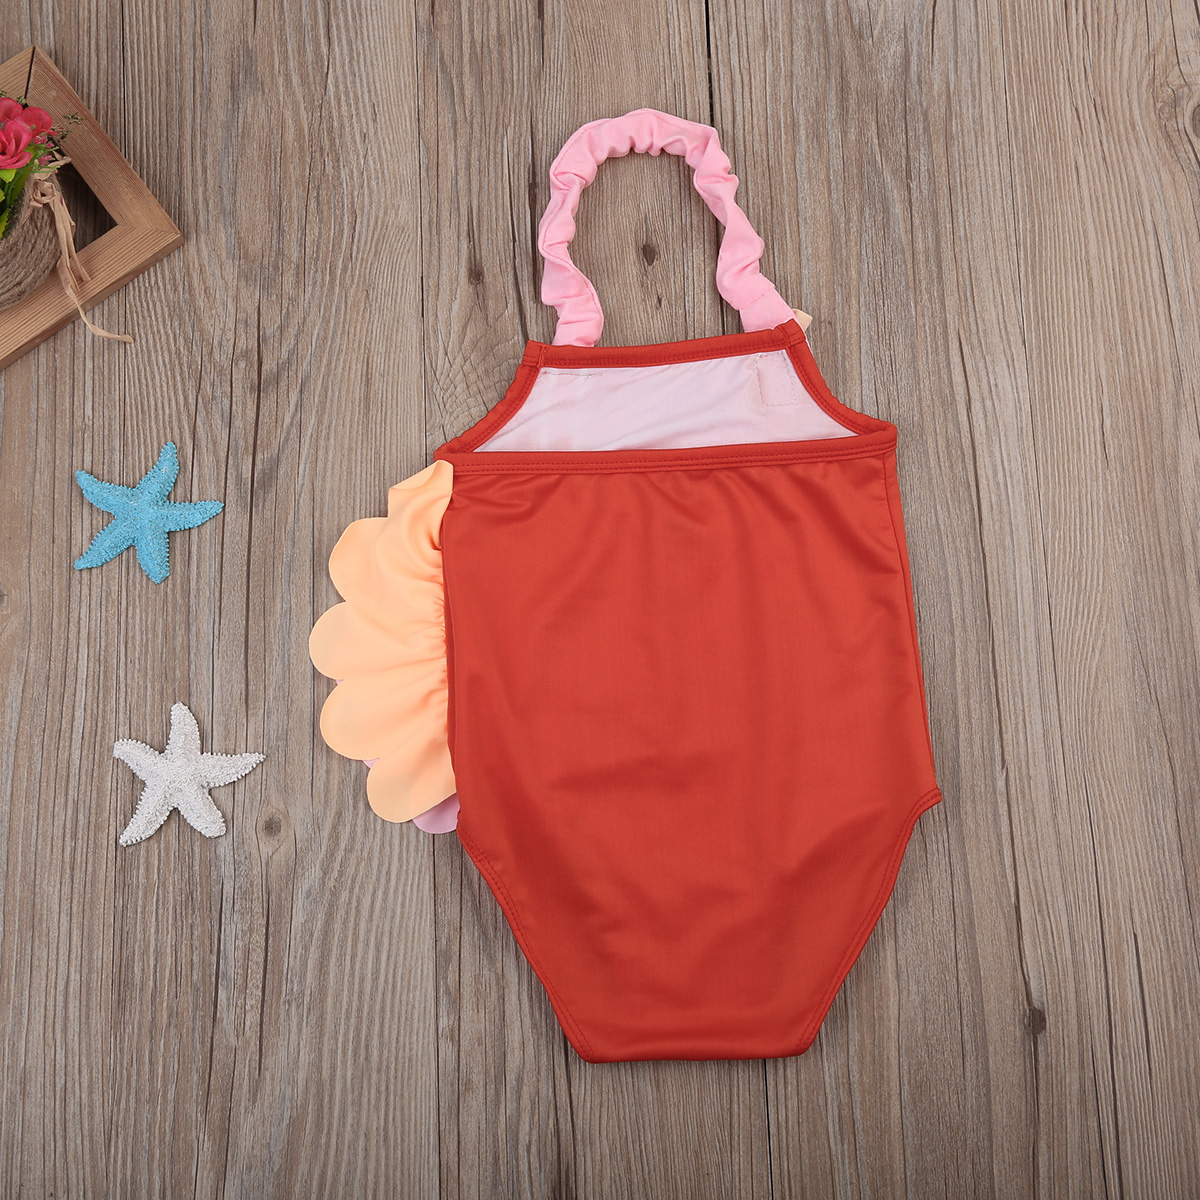 1 6Y Cute Baby Girl 3D Flamingo Bodysuit Swimsuit Children Kids Girls Summer Halter Swimming Costume Beachwear Bathing Suits-in Childrenu0027s One-Piece Suits ... & 1 6Y Cute Baby Girl 3D Flamingo Bodysuit Swimsuit Children Kids ...